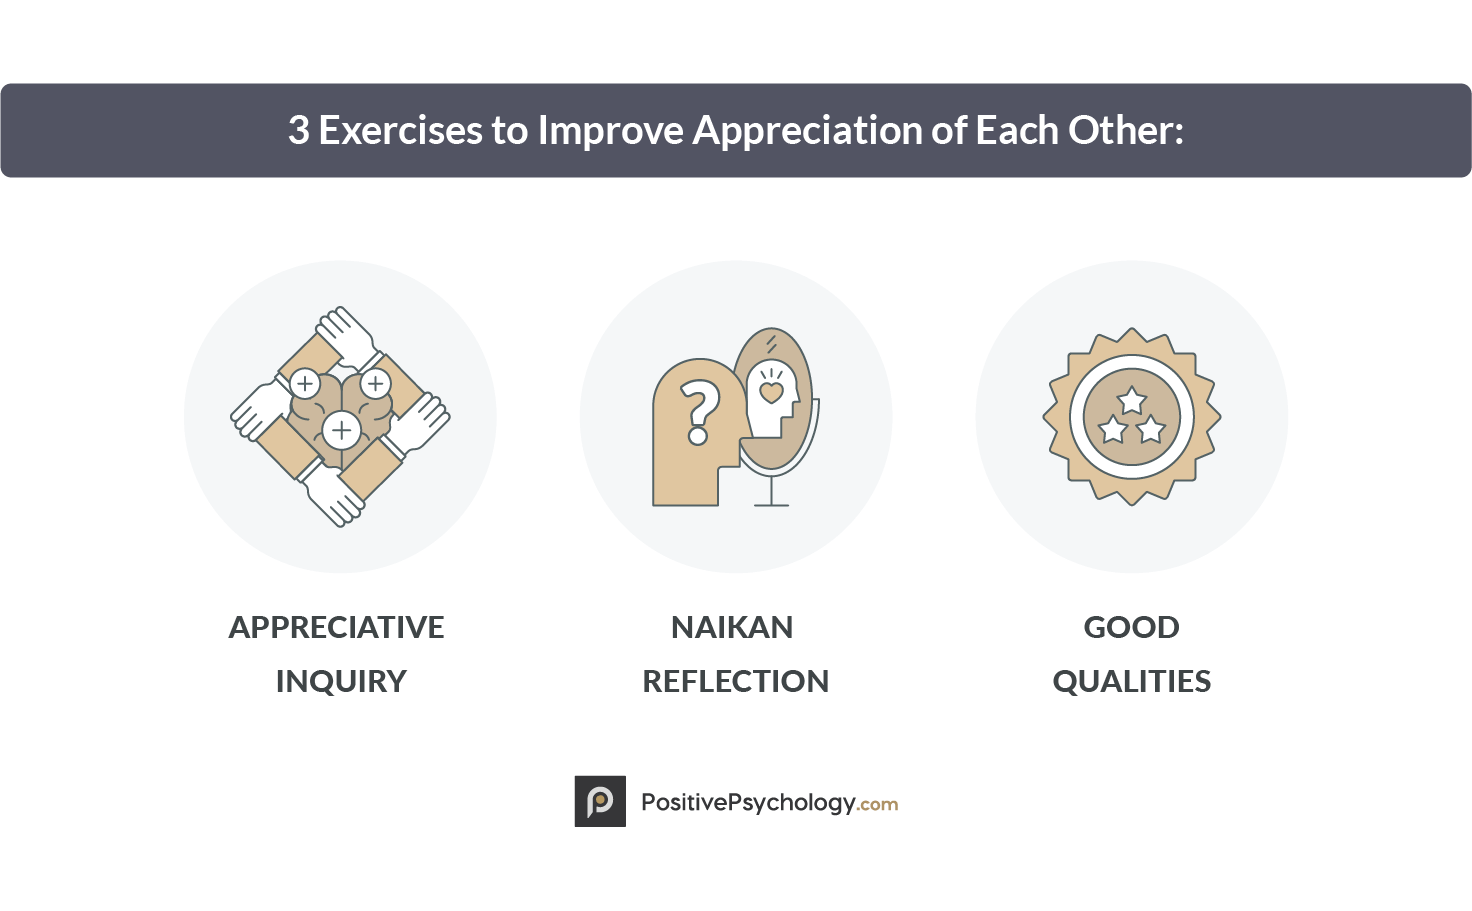 3 Exercises to Improve Appreciation of Each Other